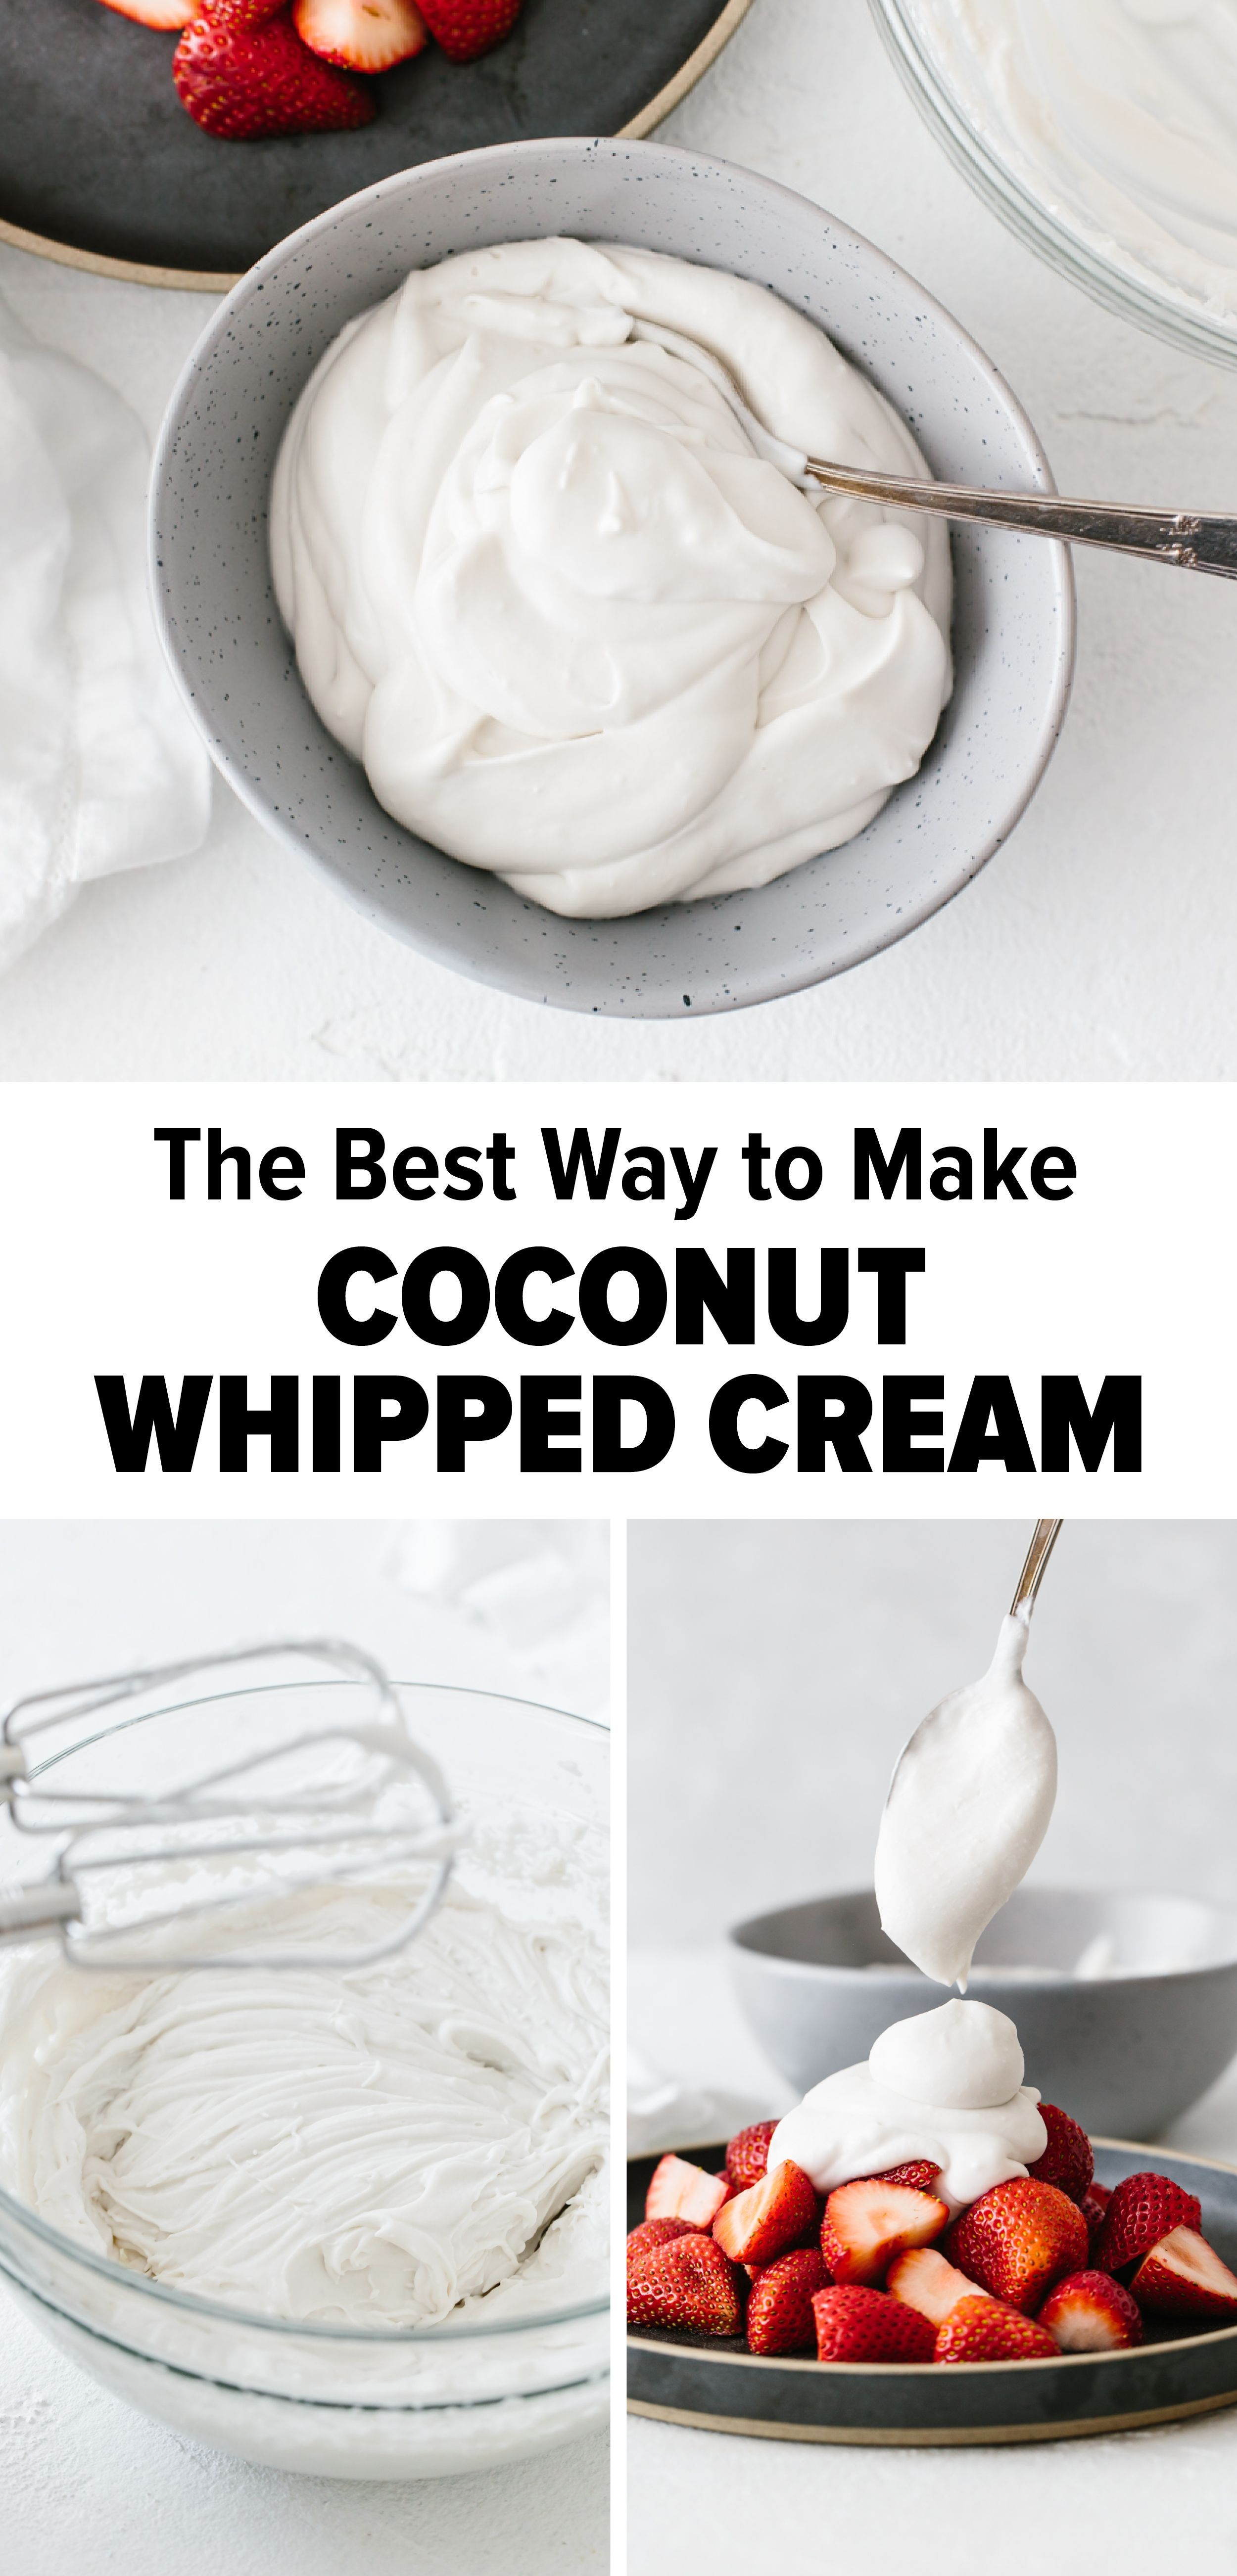 Coconut Cream Whipped Learn How To Make Coconut Whipped Cream Coconut Whipped Cream Is A In 2020 Coconut Milk Recipes Coconut Whipped Cream Recipe Coconut Recipes